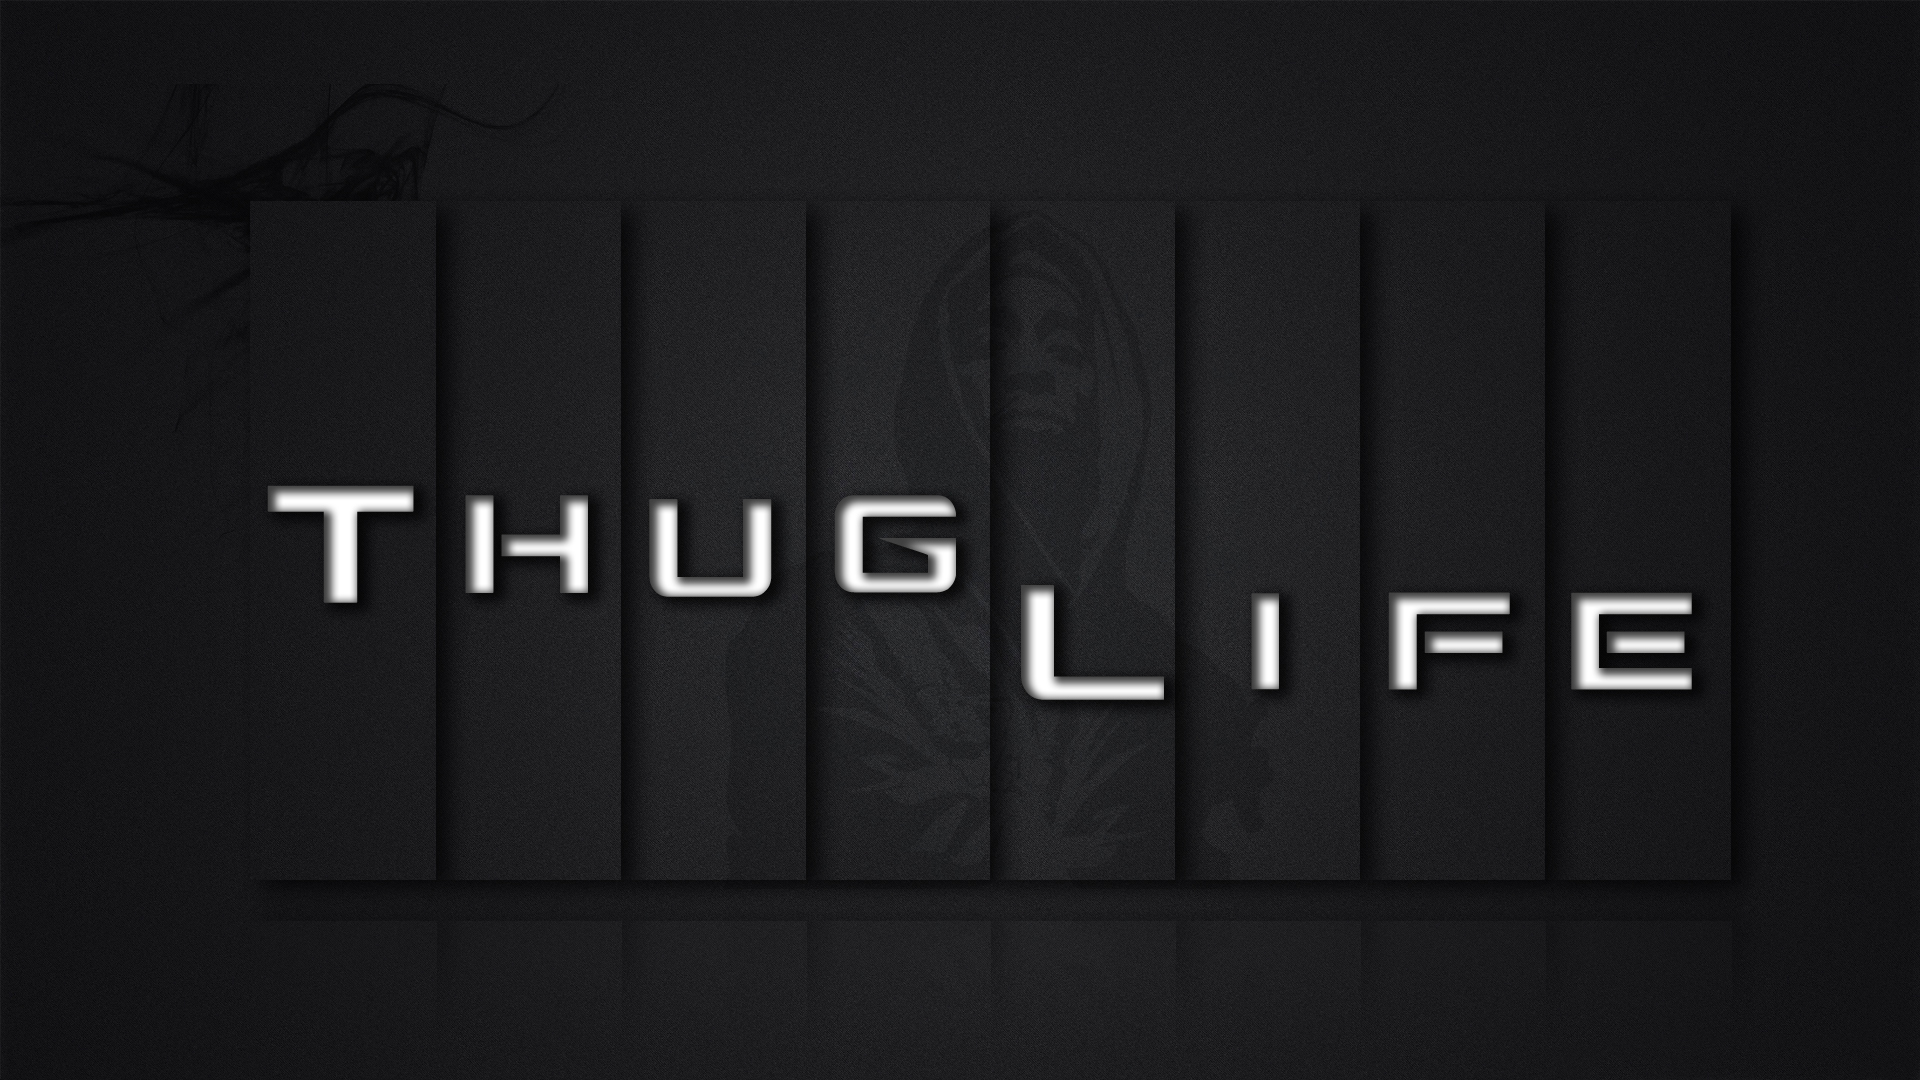 download thug life wallpaper which is under the life wallpapers 1920x1080